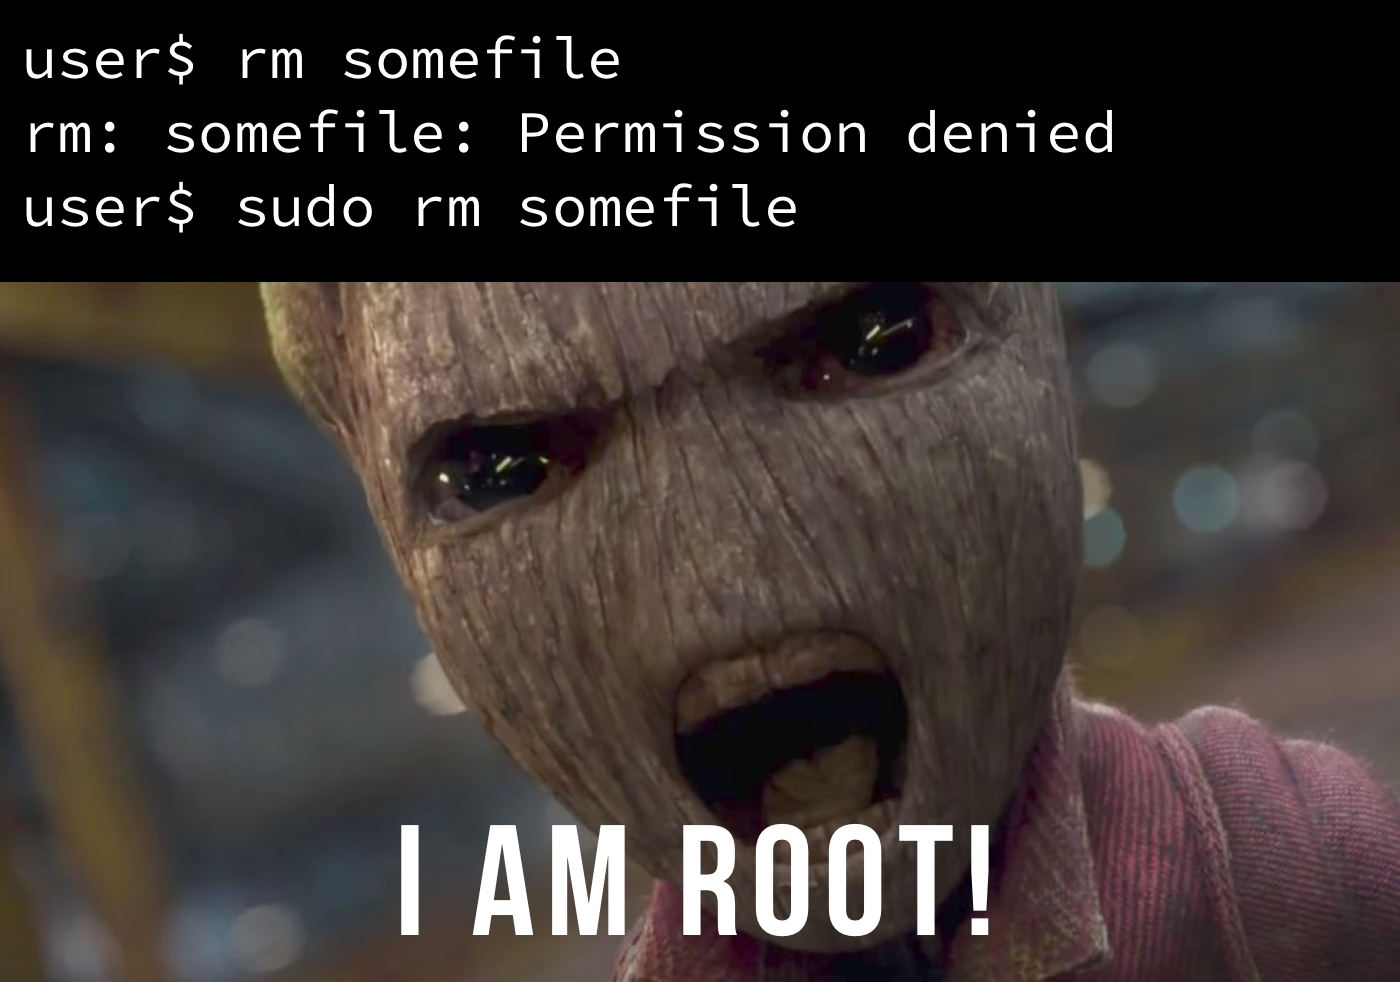 Redirect root's email